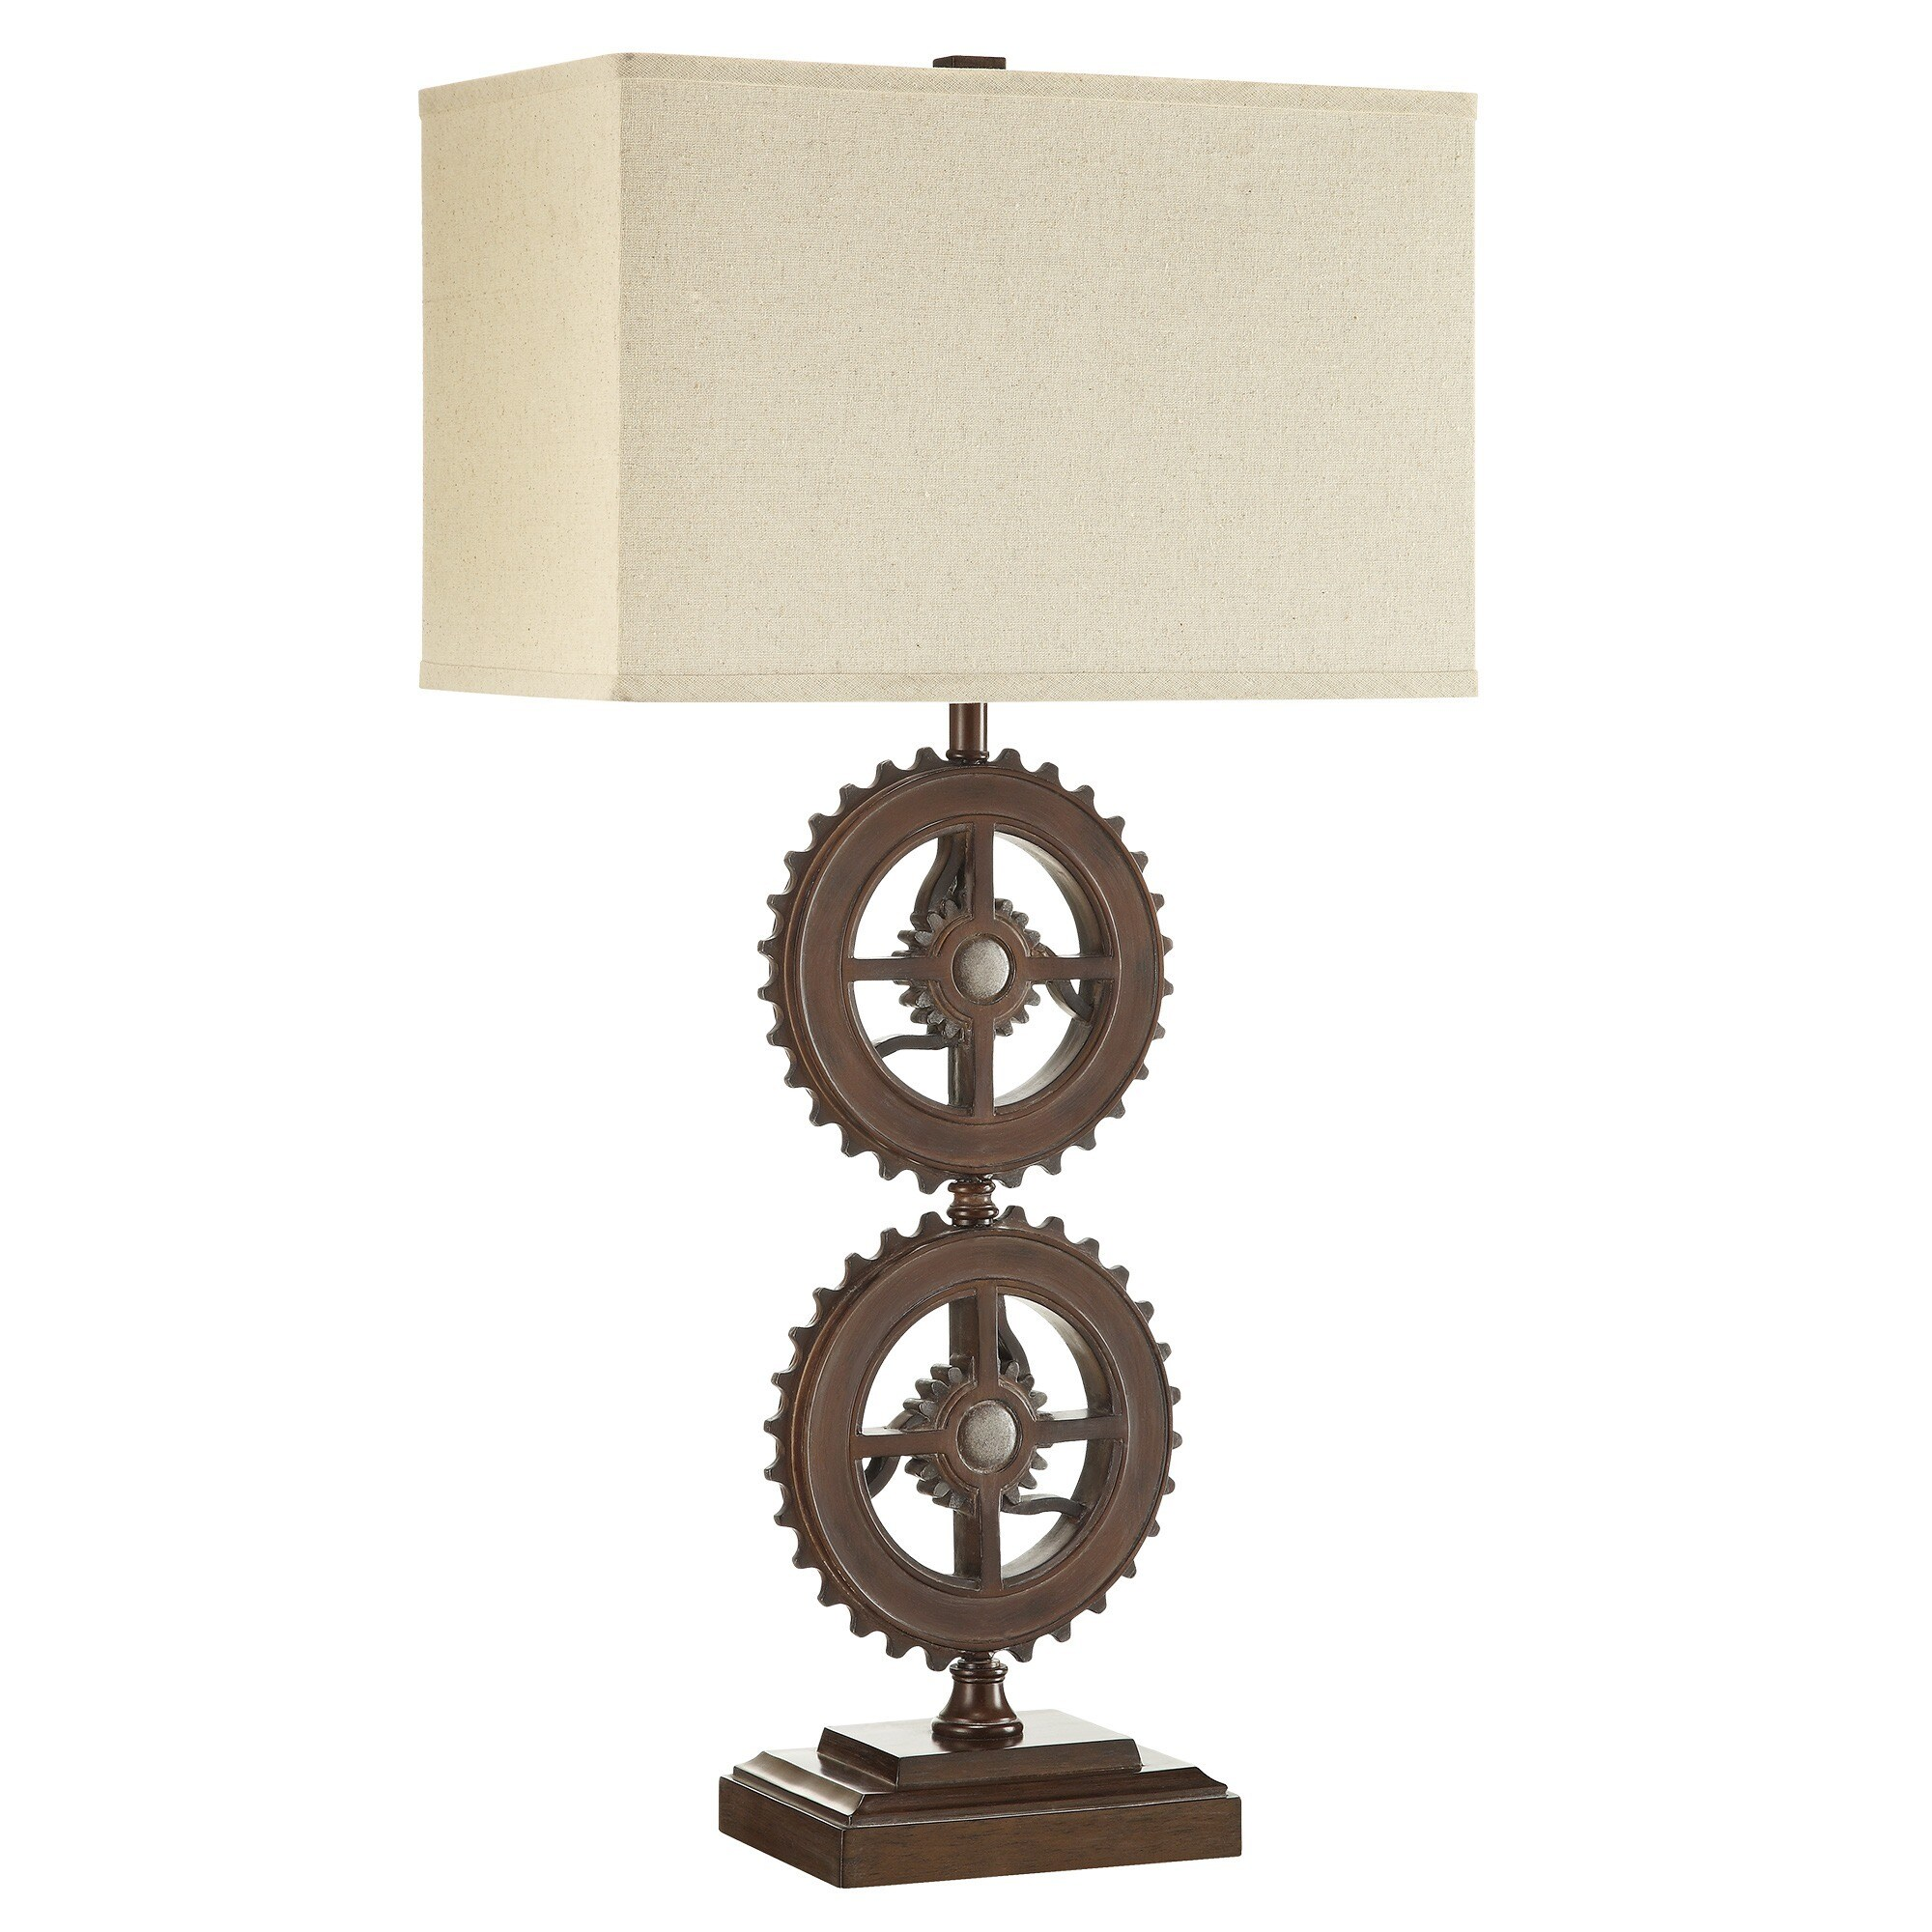 Barnard Antique Bronze Metal Gears 1-light Accent Table Lamp by iNSPIRE Q  Artisan - Free Shipping Today - Overstock.com - 16984258